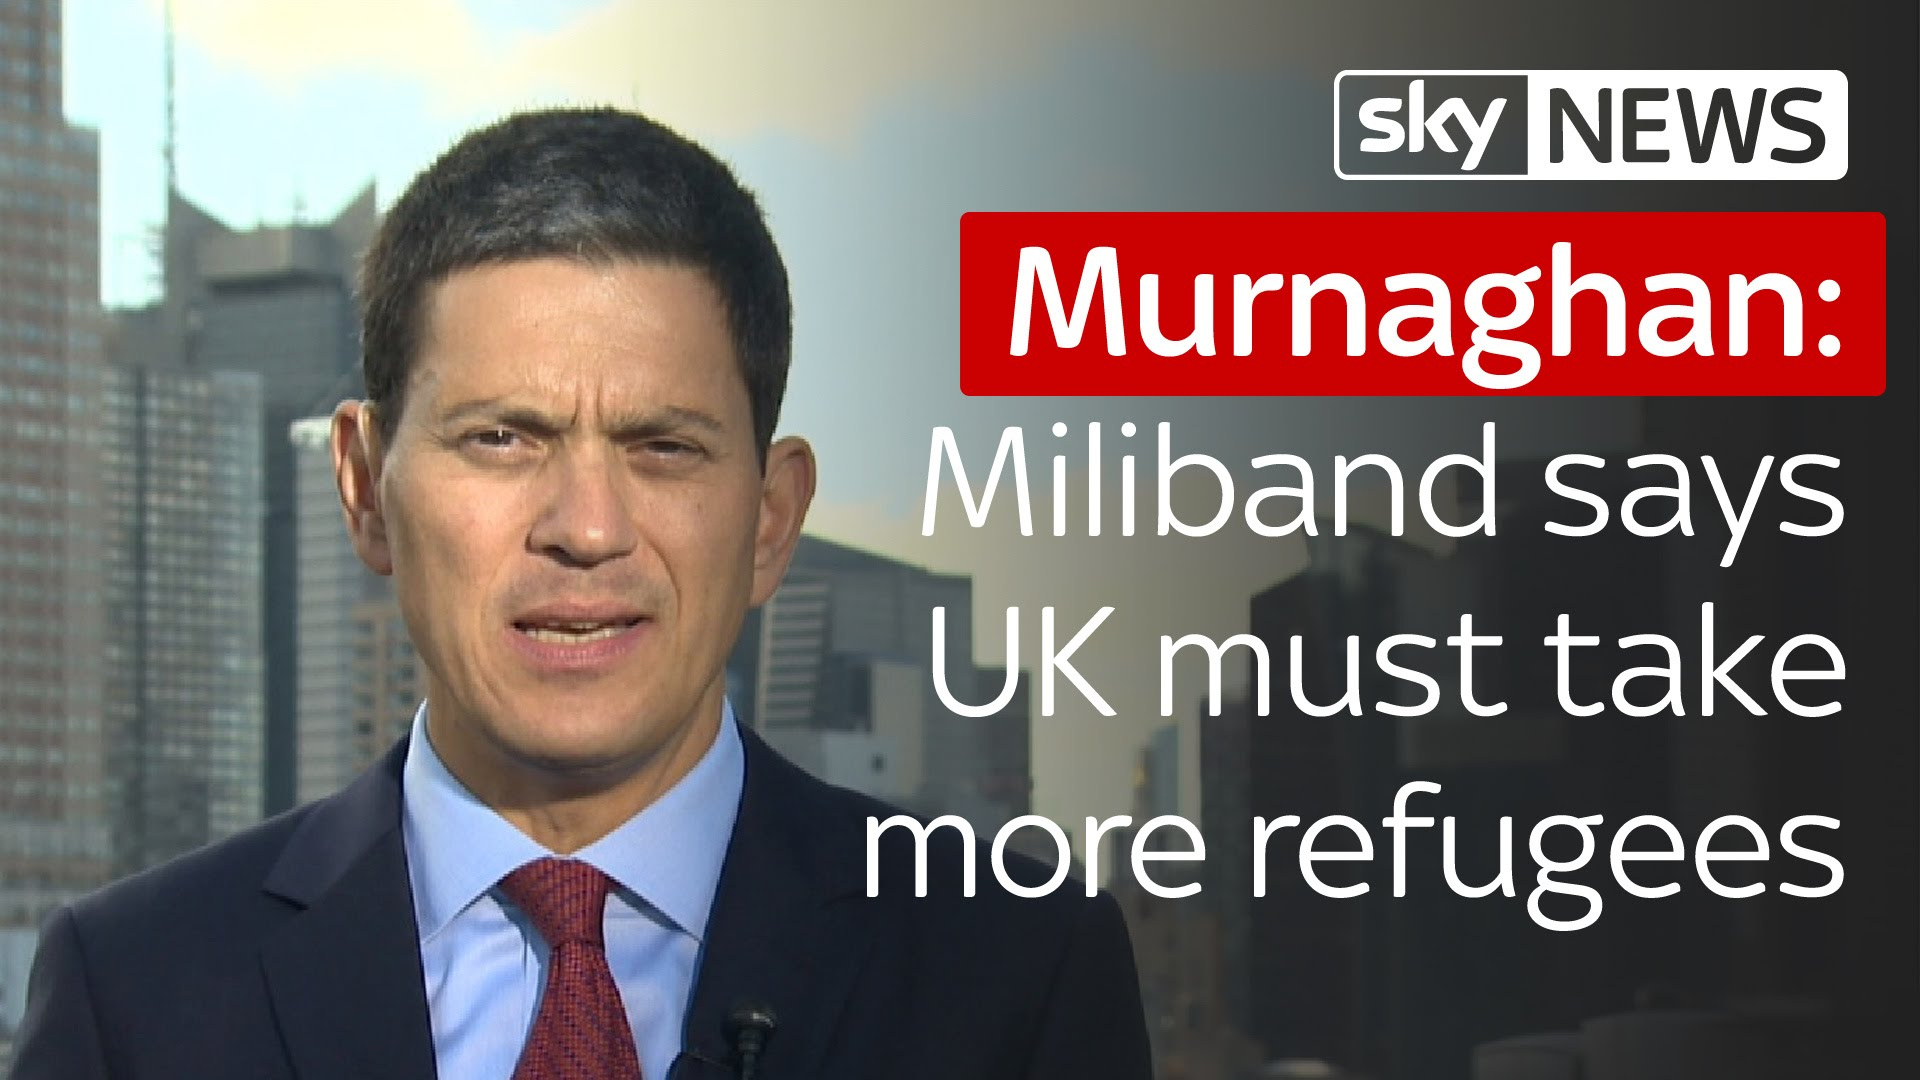 Murnaghan | David Miliband says UK must take four times as many refugees 1